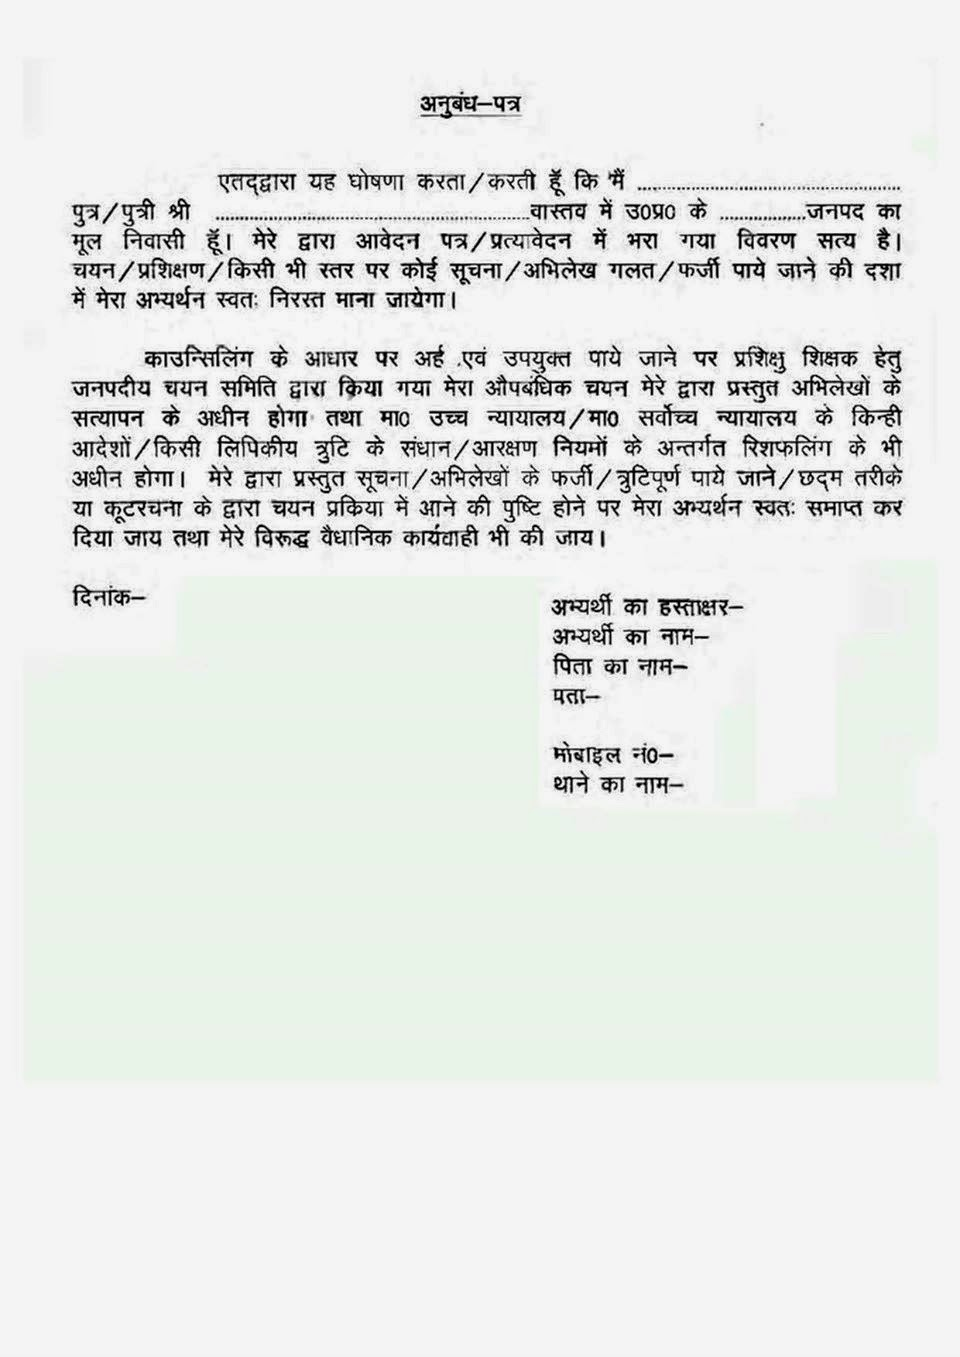 UP TET Counselling documents